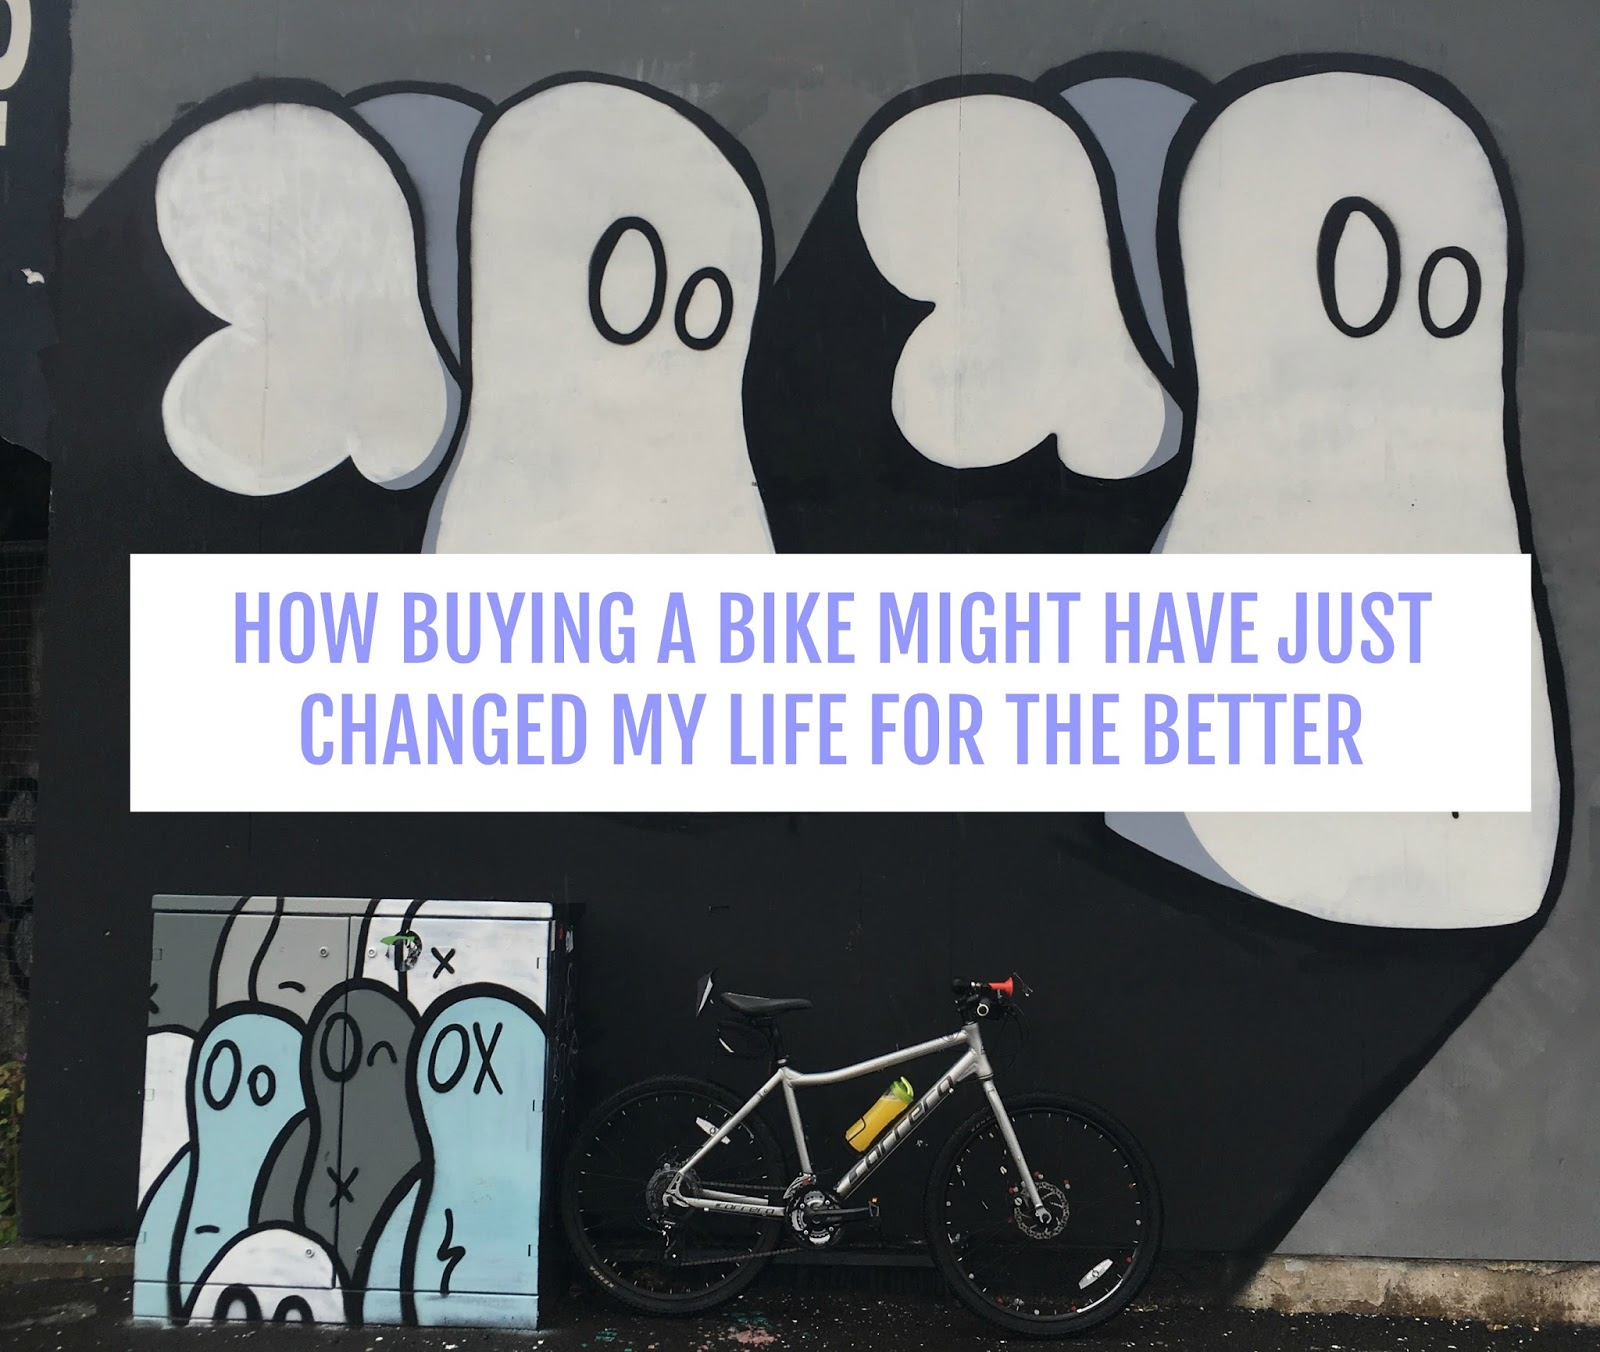 How buying a bike might have just changed my life for the better.